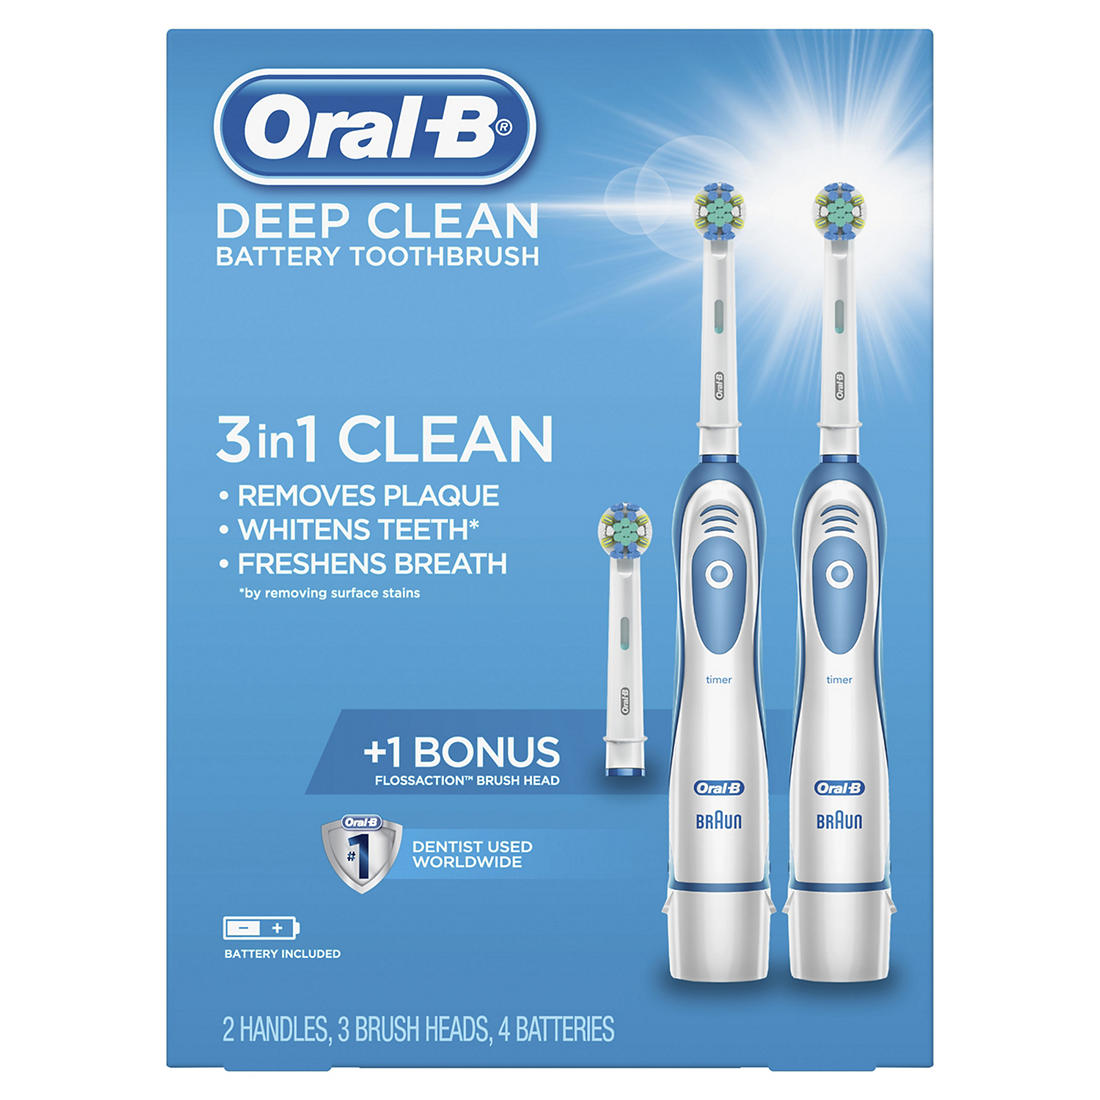 Oral B Deep Clean Battery Toothbrush 2 Pk